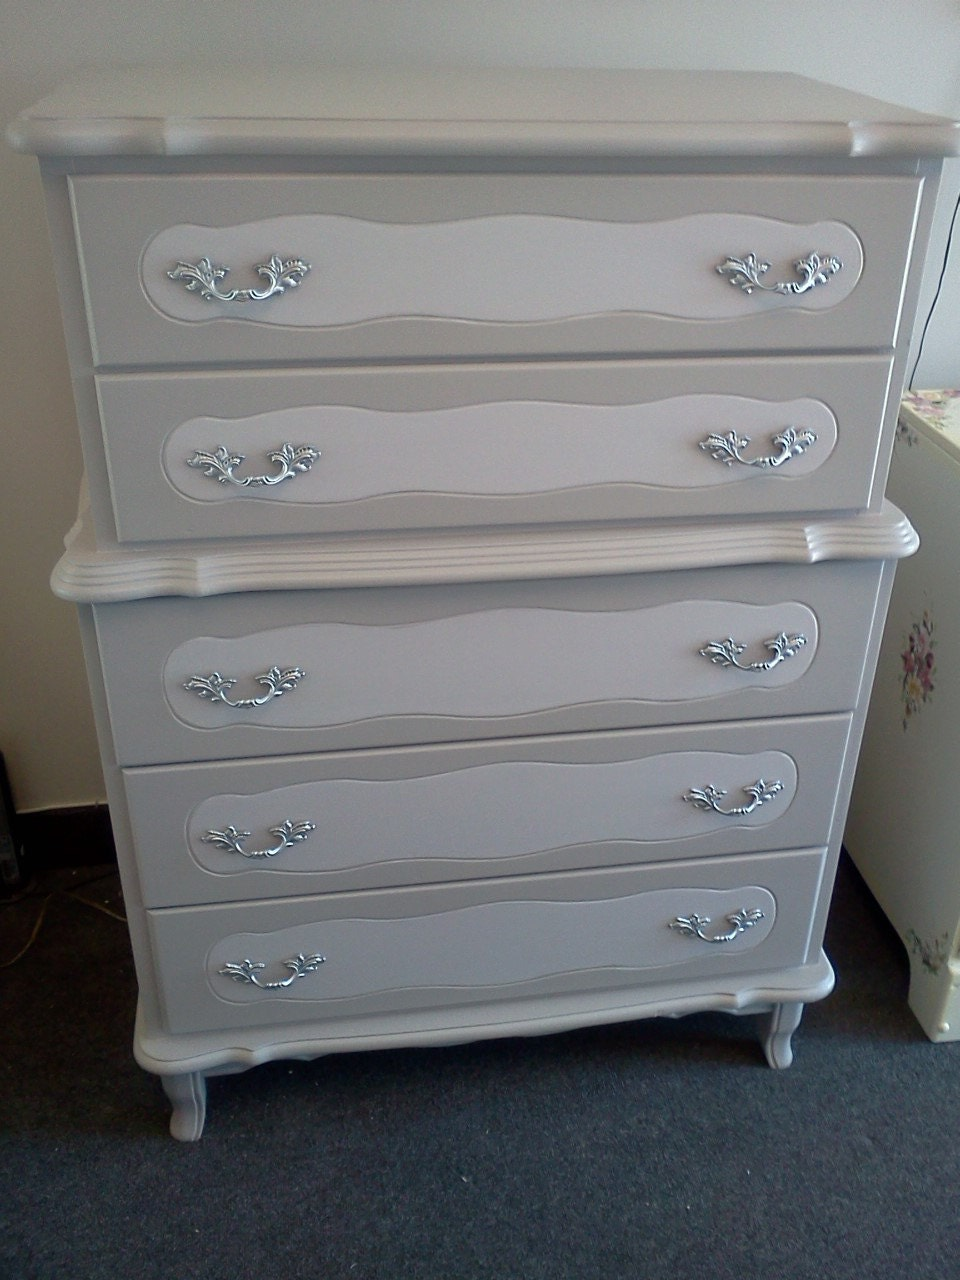 vintage painted french provincial shabby chic dresser handpainted furniture in moonachie nj 07074. Black Bedroom Furniture Sets. Home Design Ideas